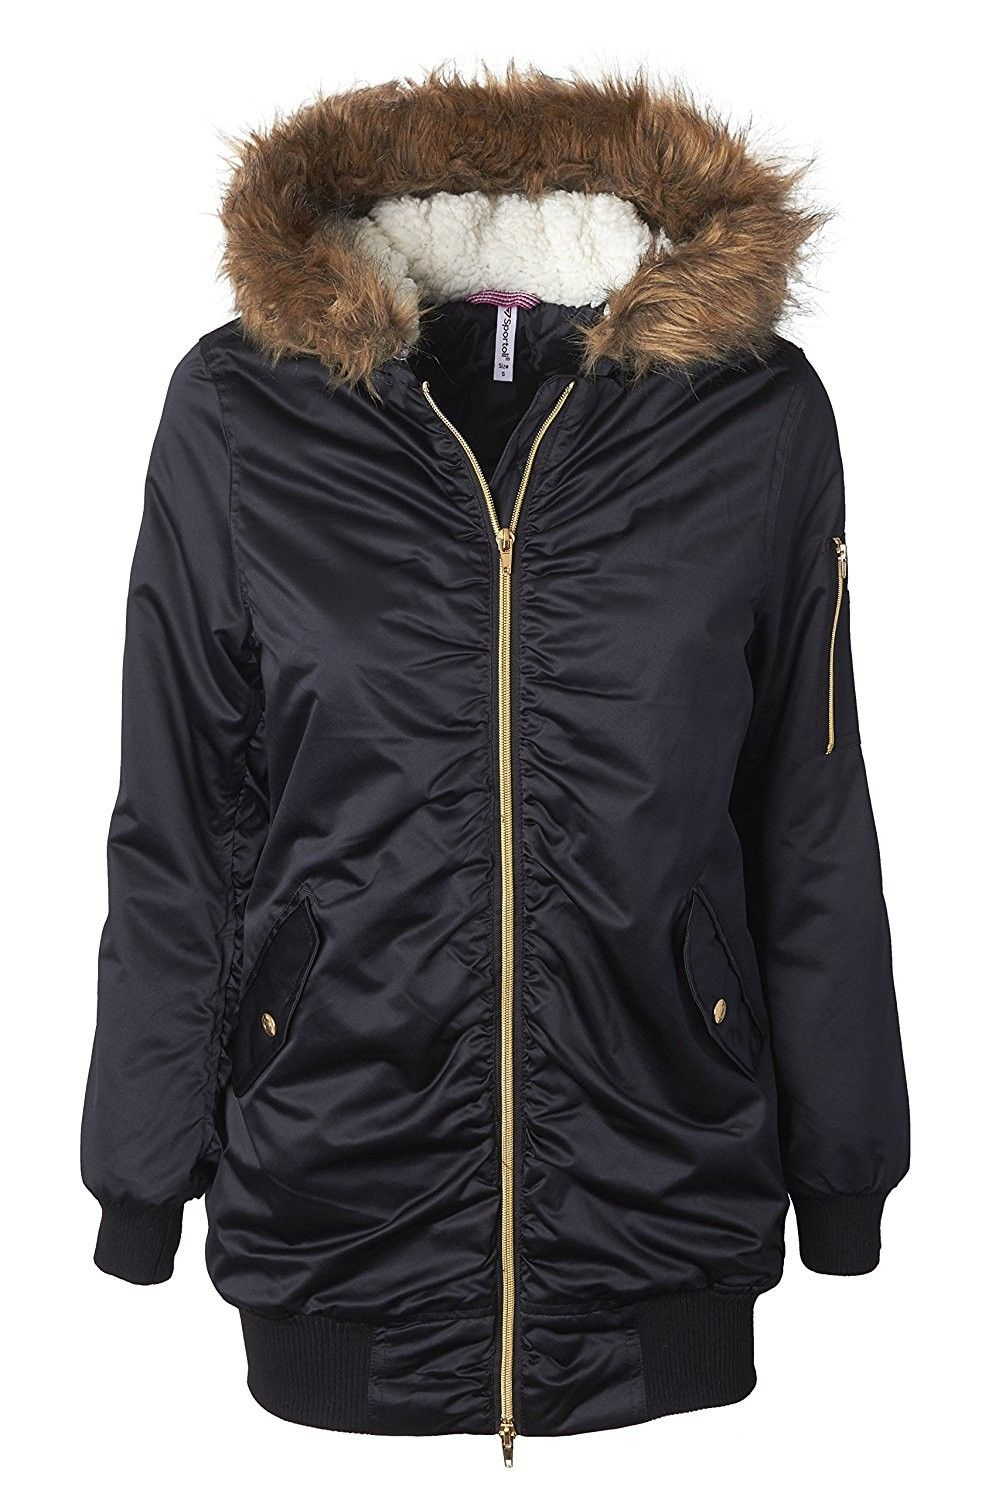 Women S Bomber Winter Puffer Jacket With Attached Sherpa Lined Hood And Removable Faux Fur Trim Black Cm1874ulam9 Winter Puffer Jackets Winter Puffer Coat Womens Faux Fur Coat [ 1500 x 982 Pixel ]